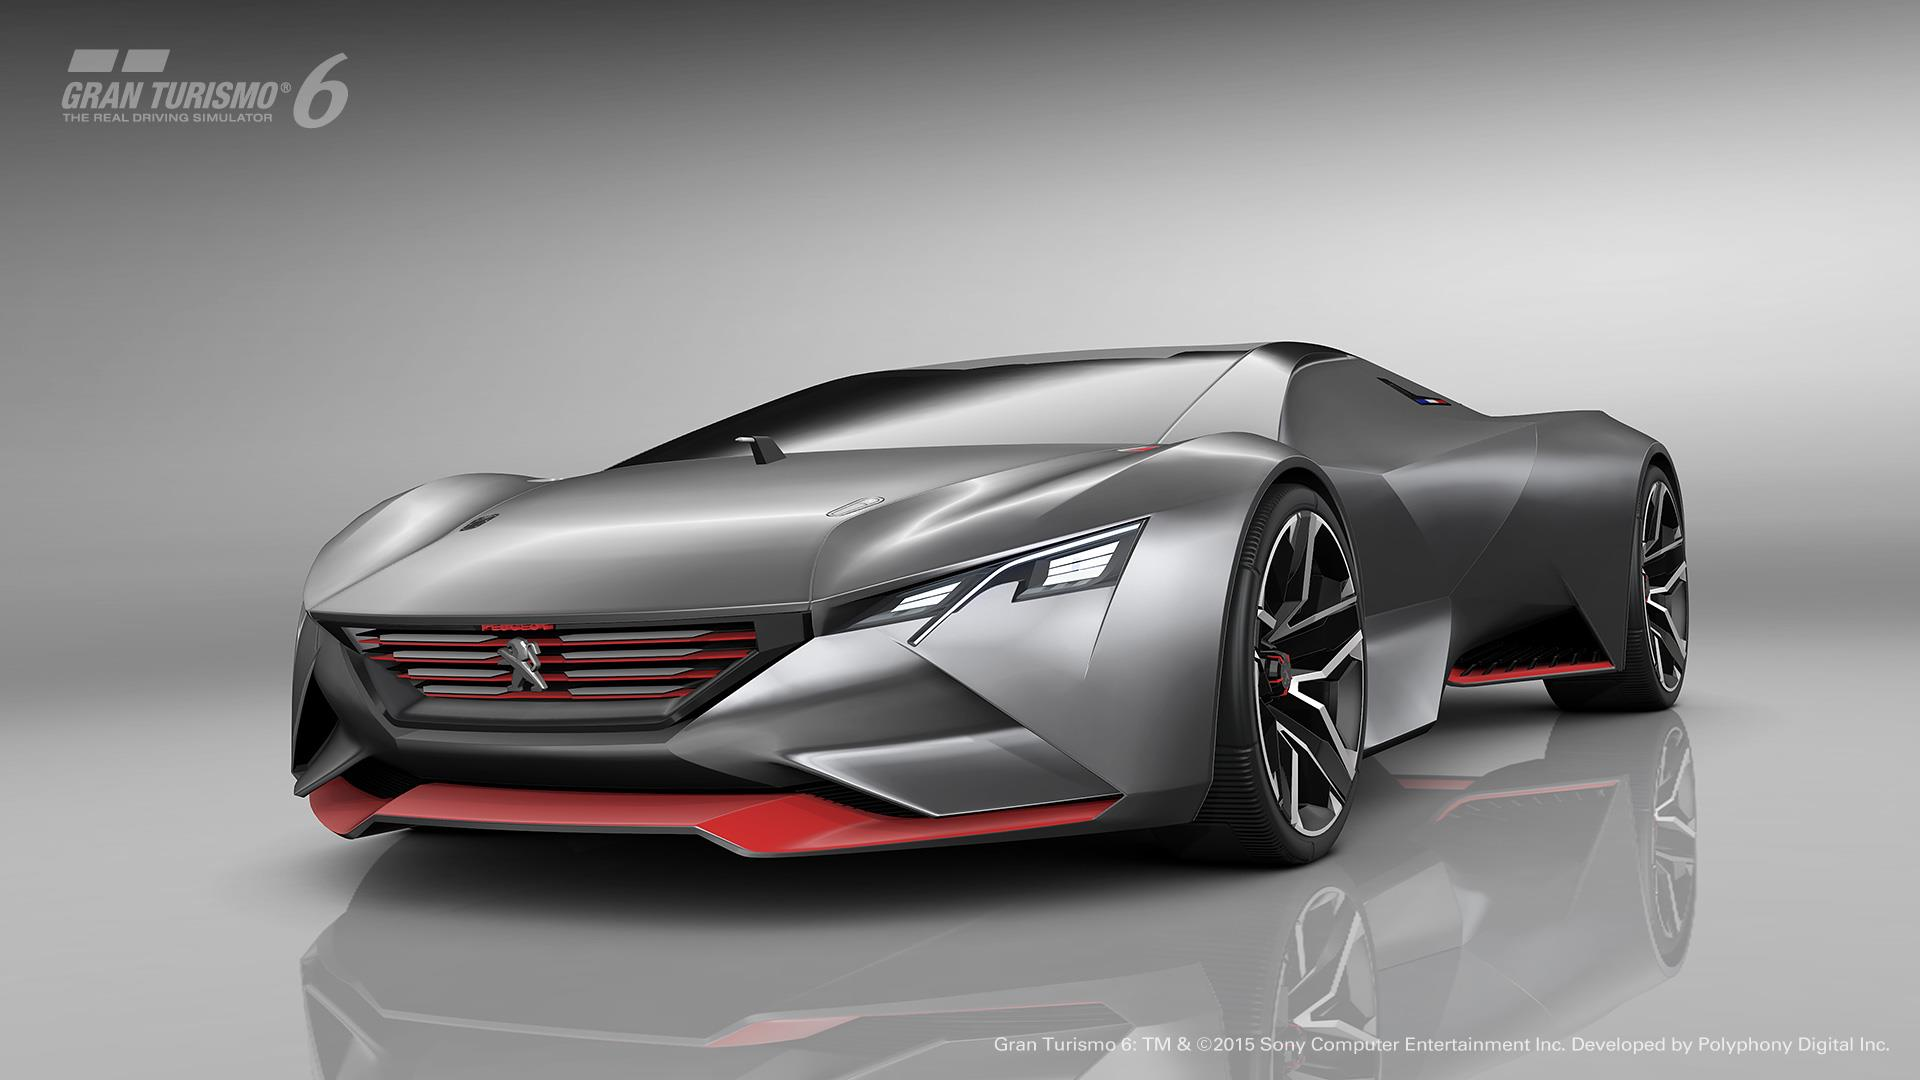 2015 peugeot vision gran turismo concept news and information research and pricing. Black Bedroom Furniture Sets. Home Design Ideas